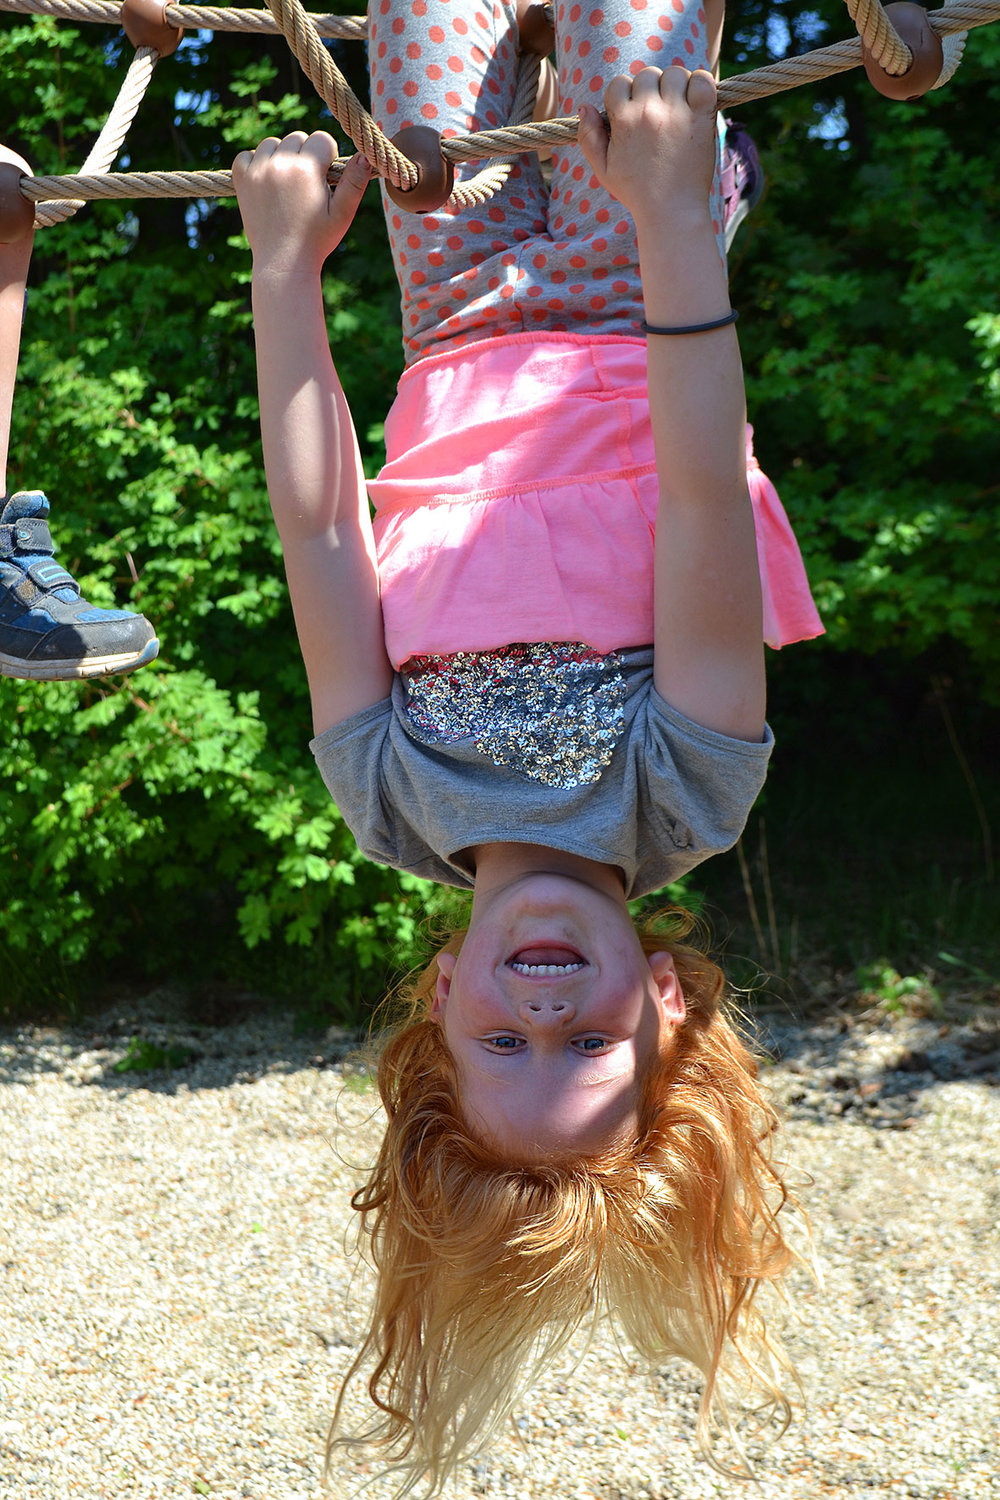 Ledon-little-girl-upsidedown_small.jpg